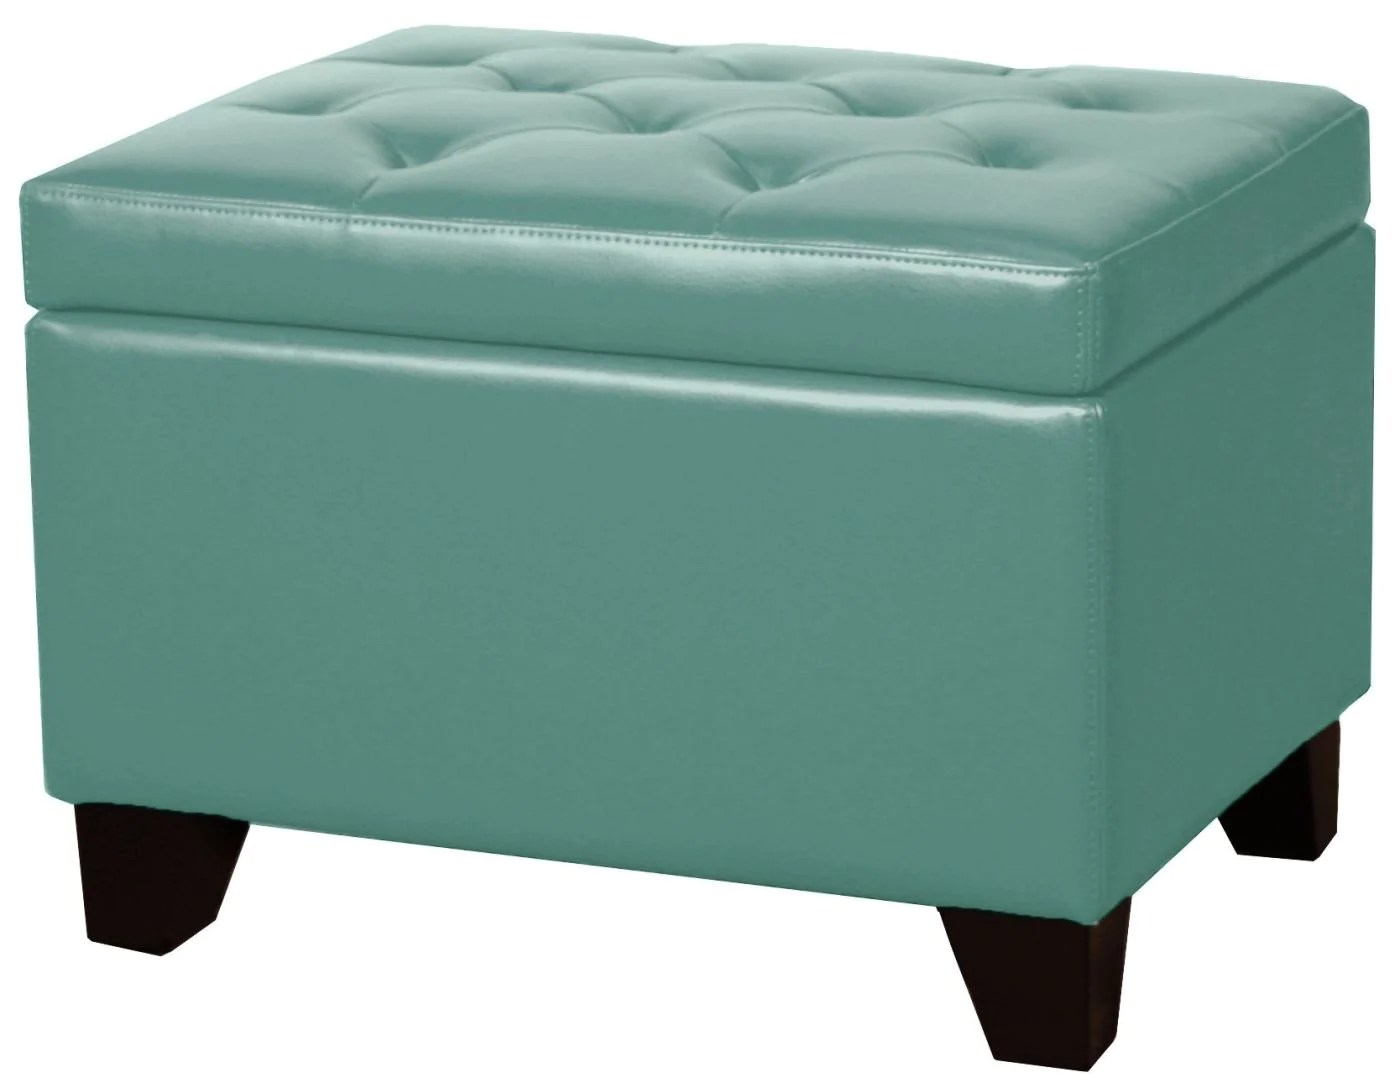 turquoise leather chair and ottoman gaming reviews uk new pacific direct julian rectangular bonded